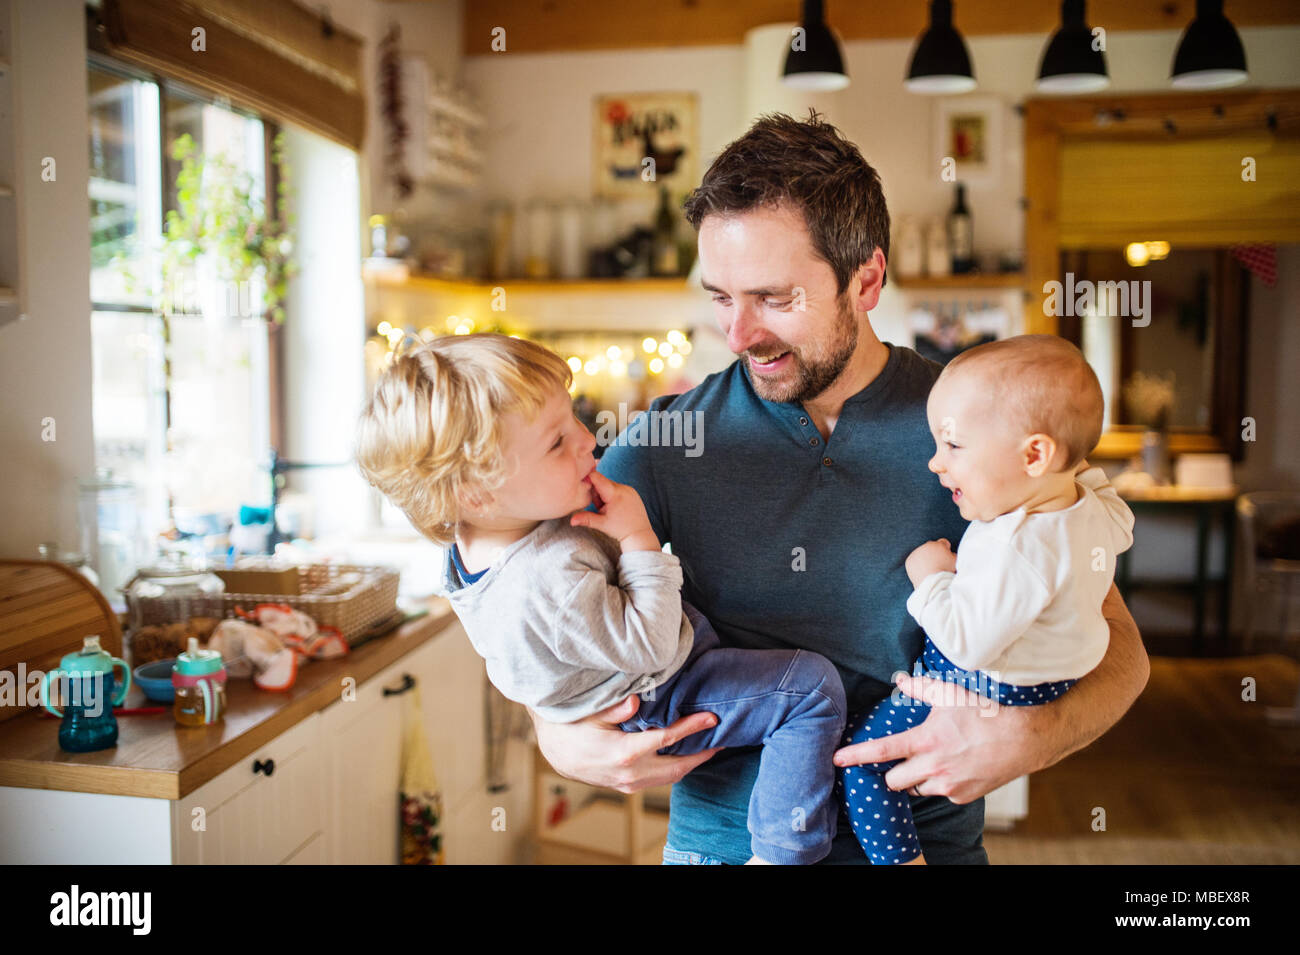 Father holding two toddlers at home. Paternity leave. - Stock Image